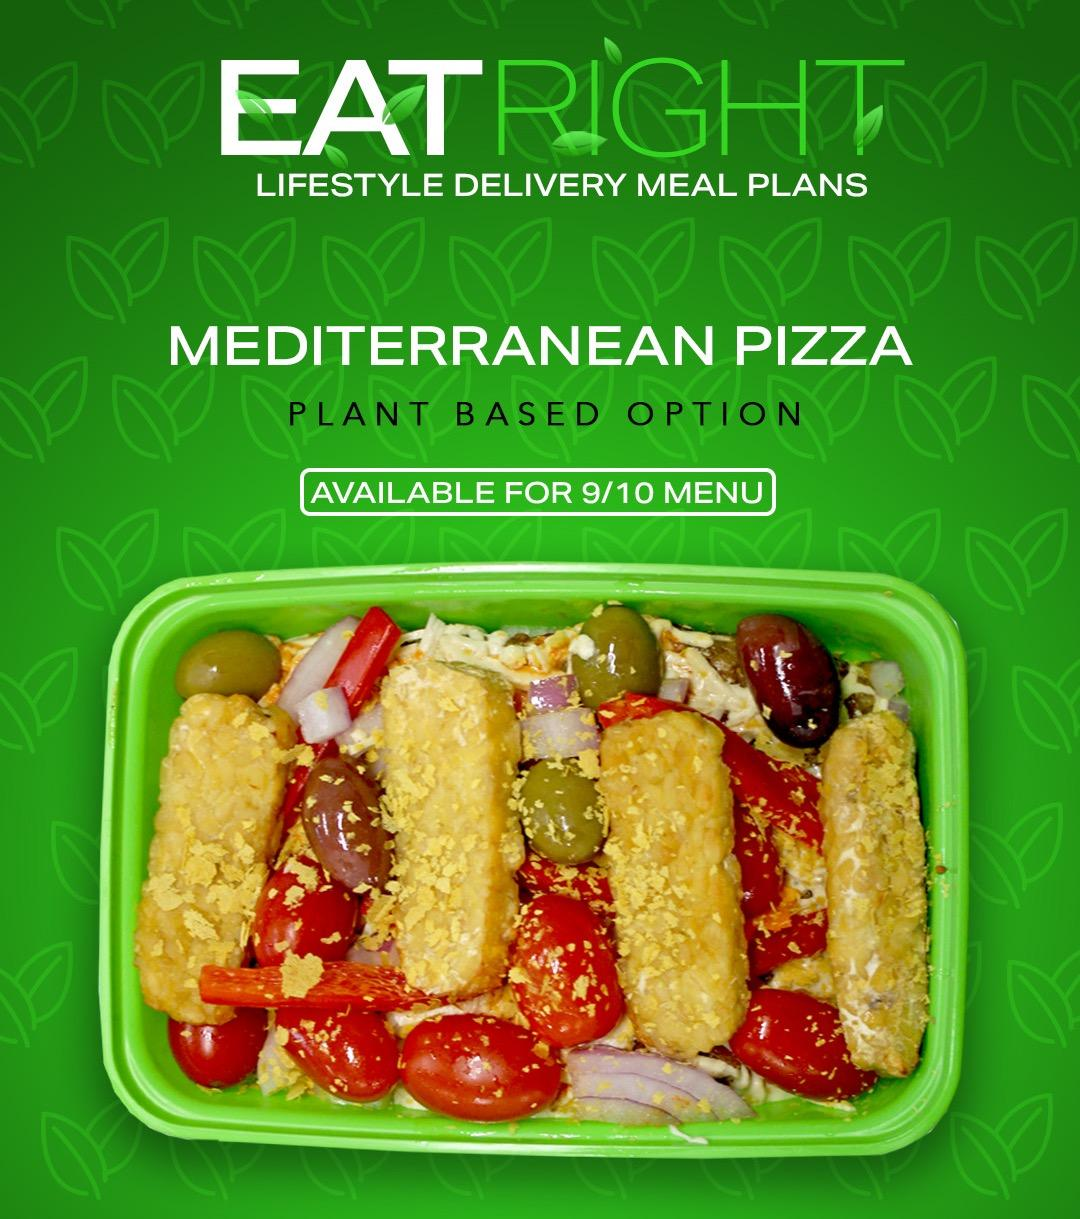 Eat Right Meal Plans image 3